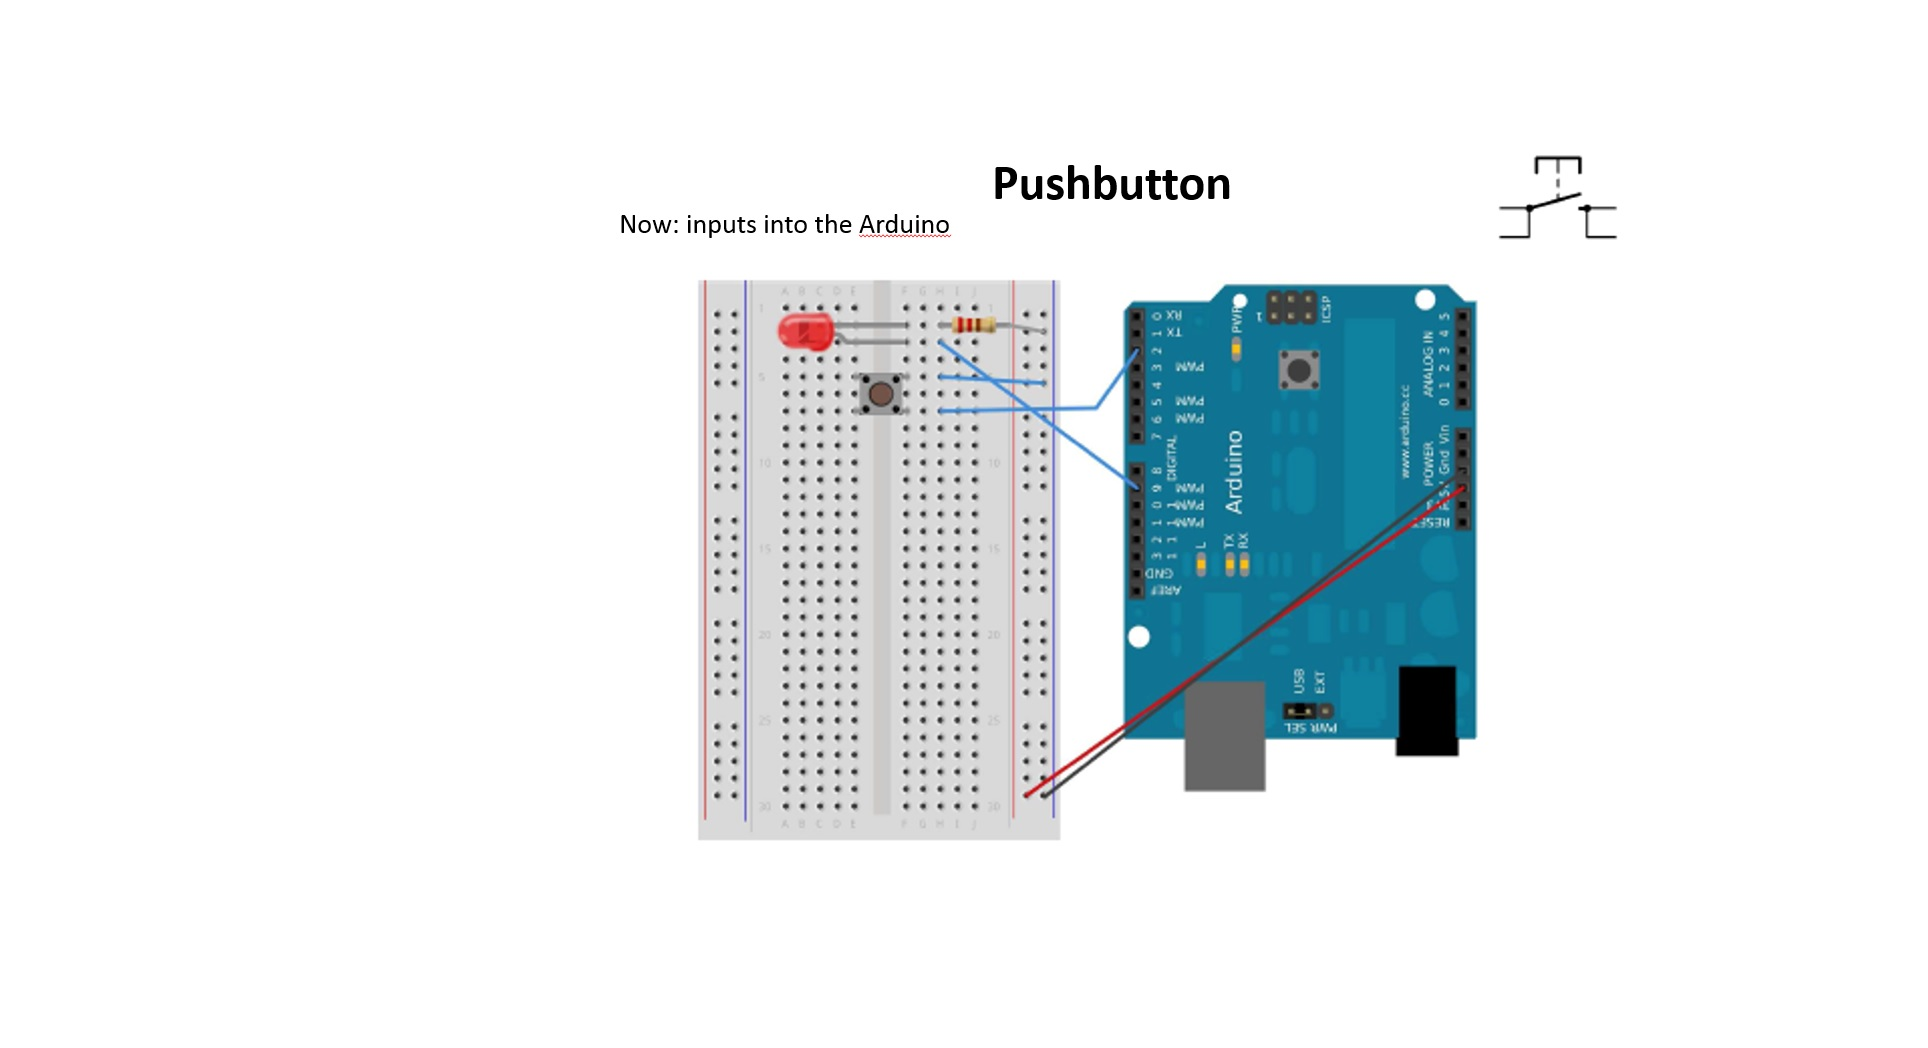 1.) Multiple LED • Draw The Circuit Diagram For Th... | Chegg.com